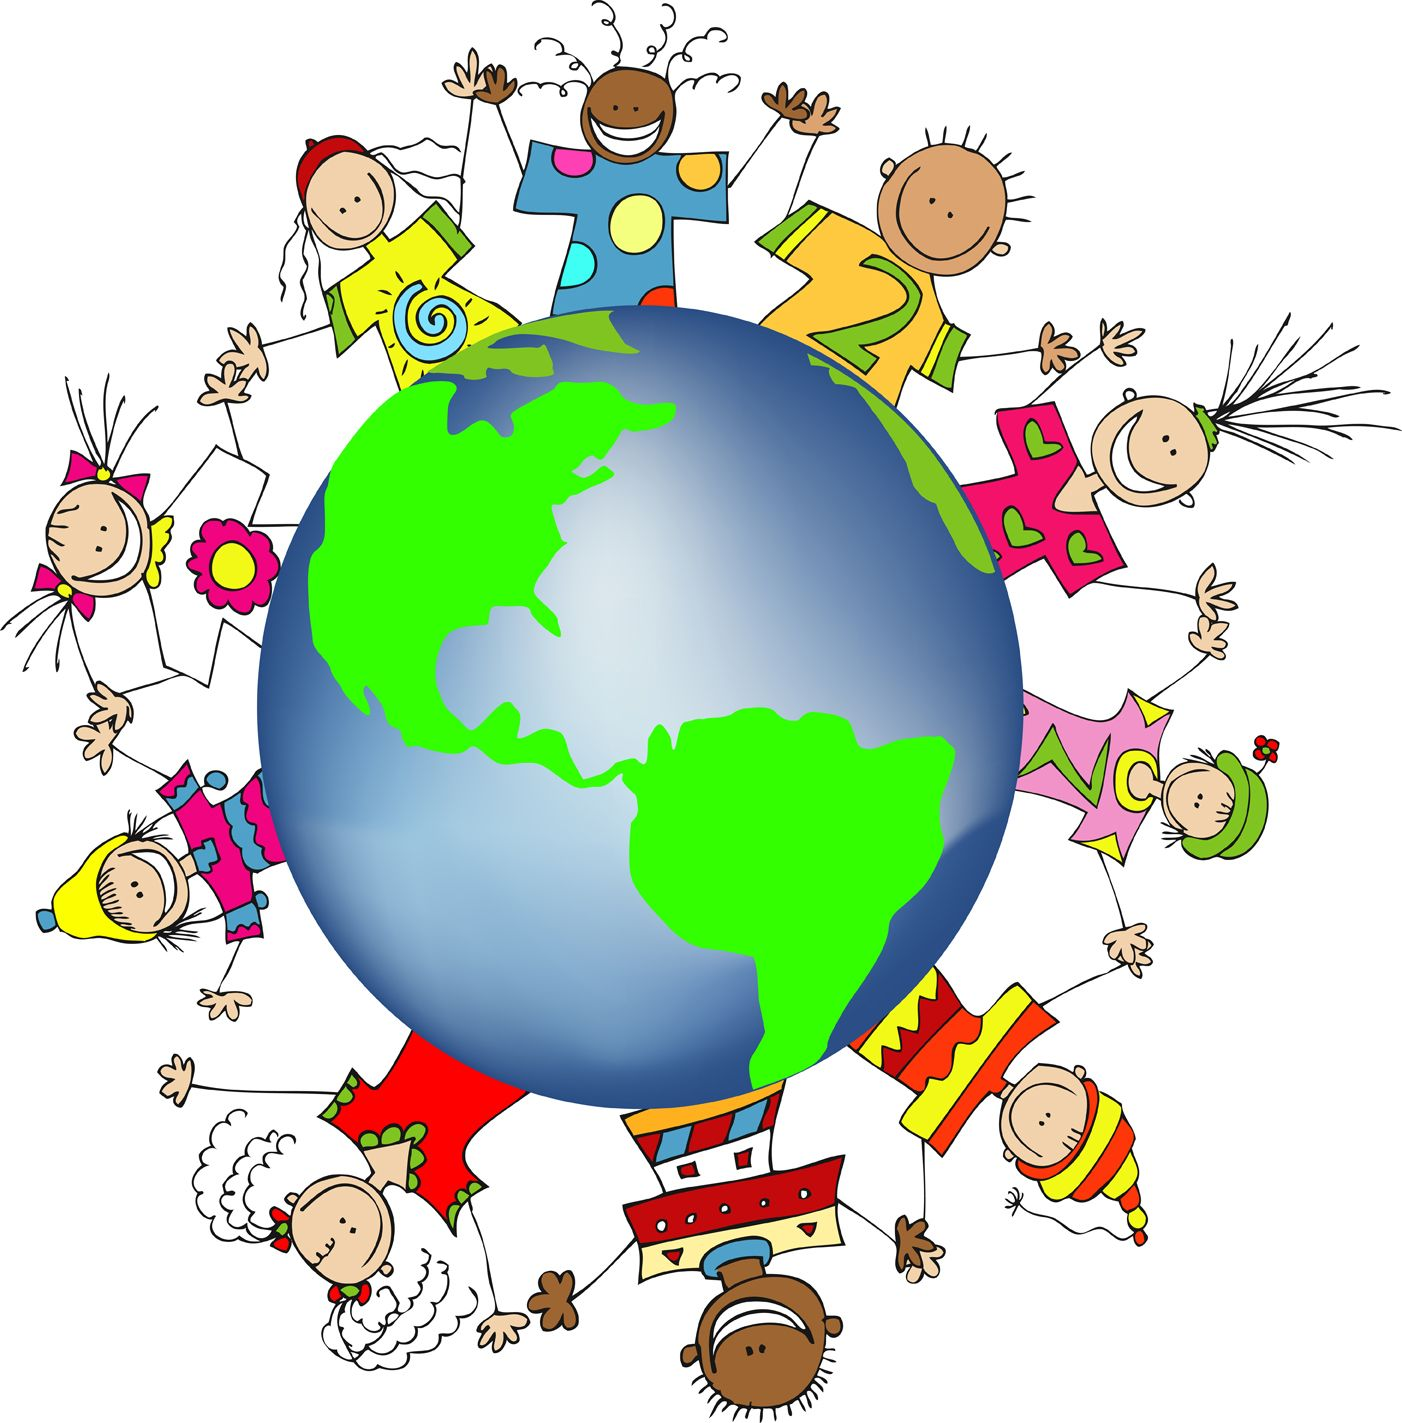 kids world hands friends networks globe illustration small free rh pinterest com word clip art download world clip art free